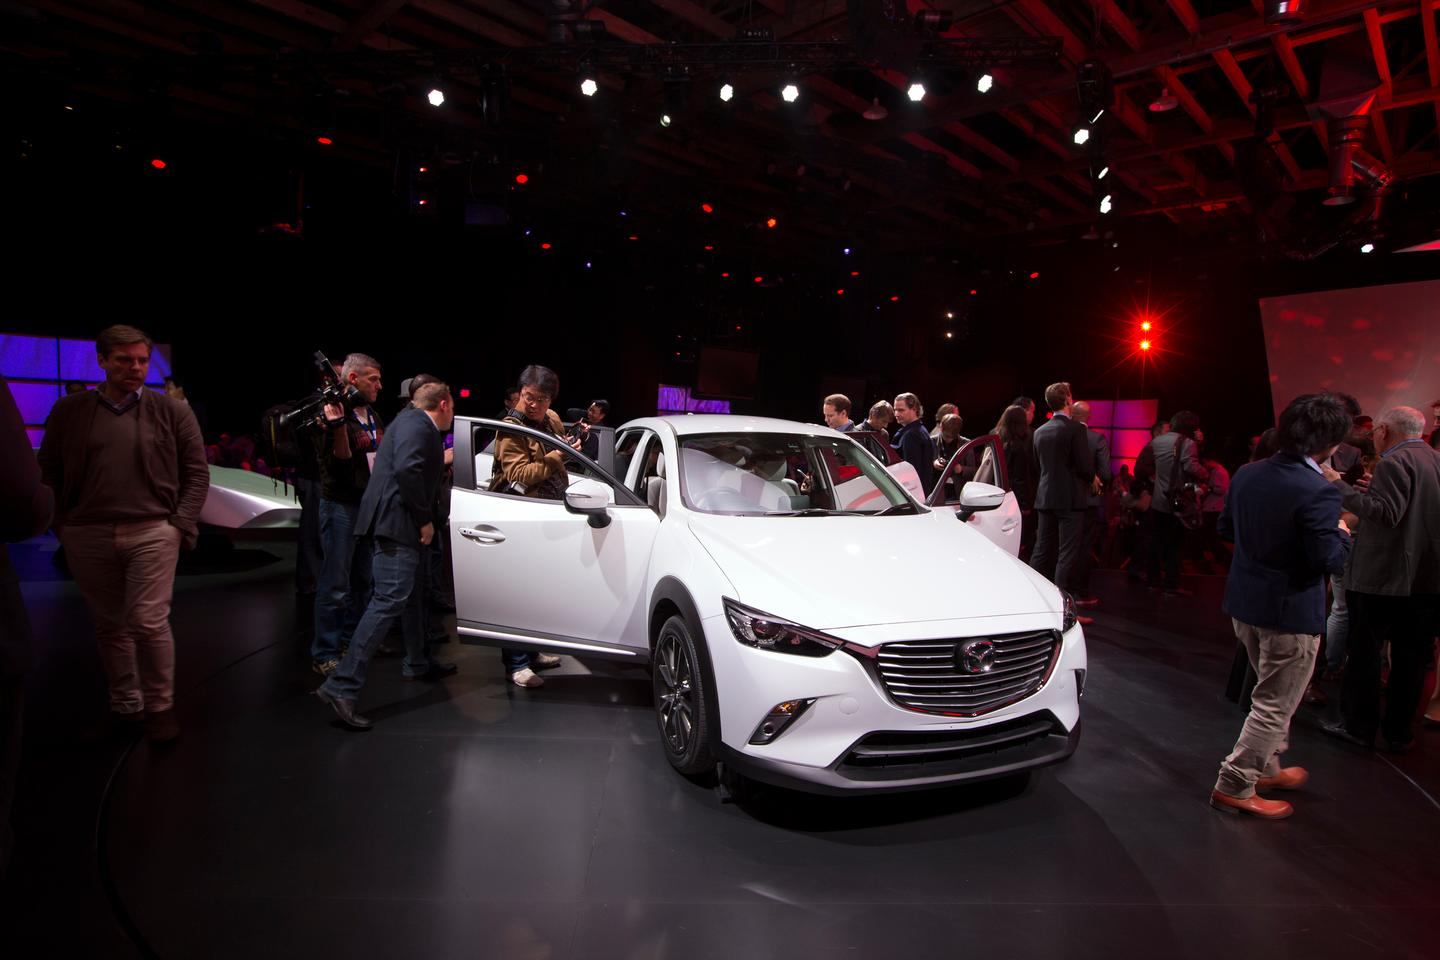 Mazda's CX-3 debuted at the Los Angeles Auto Show